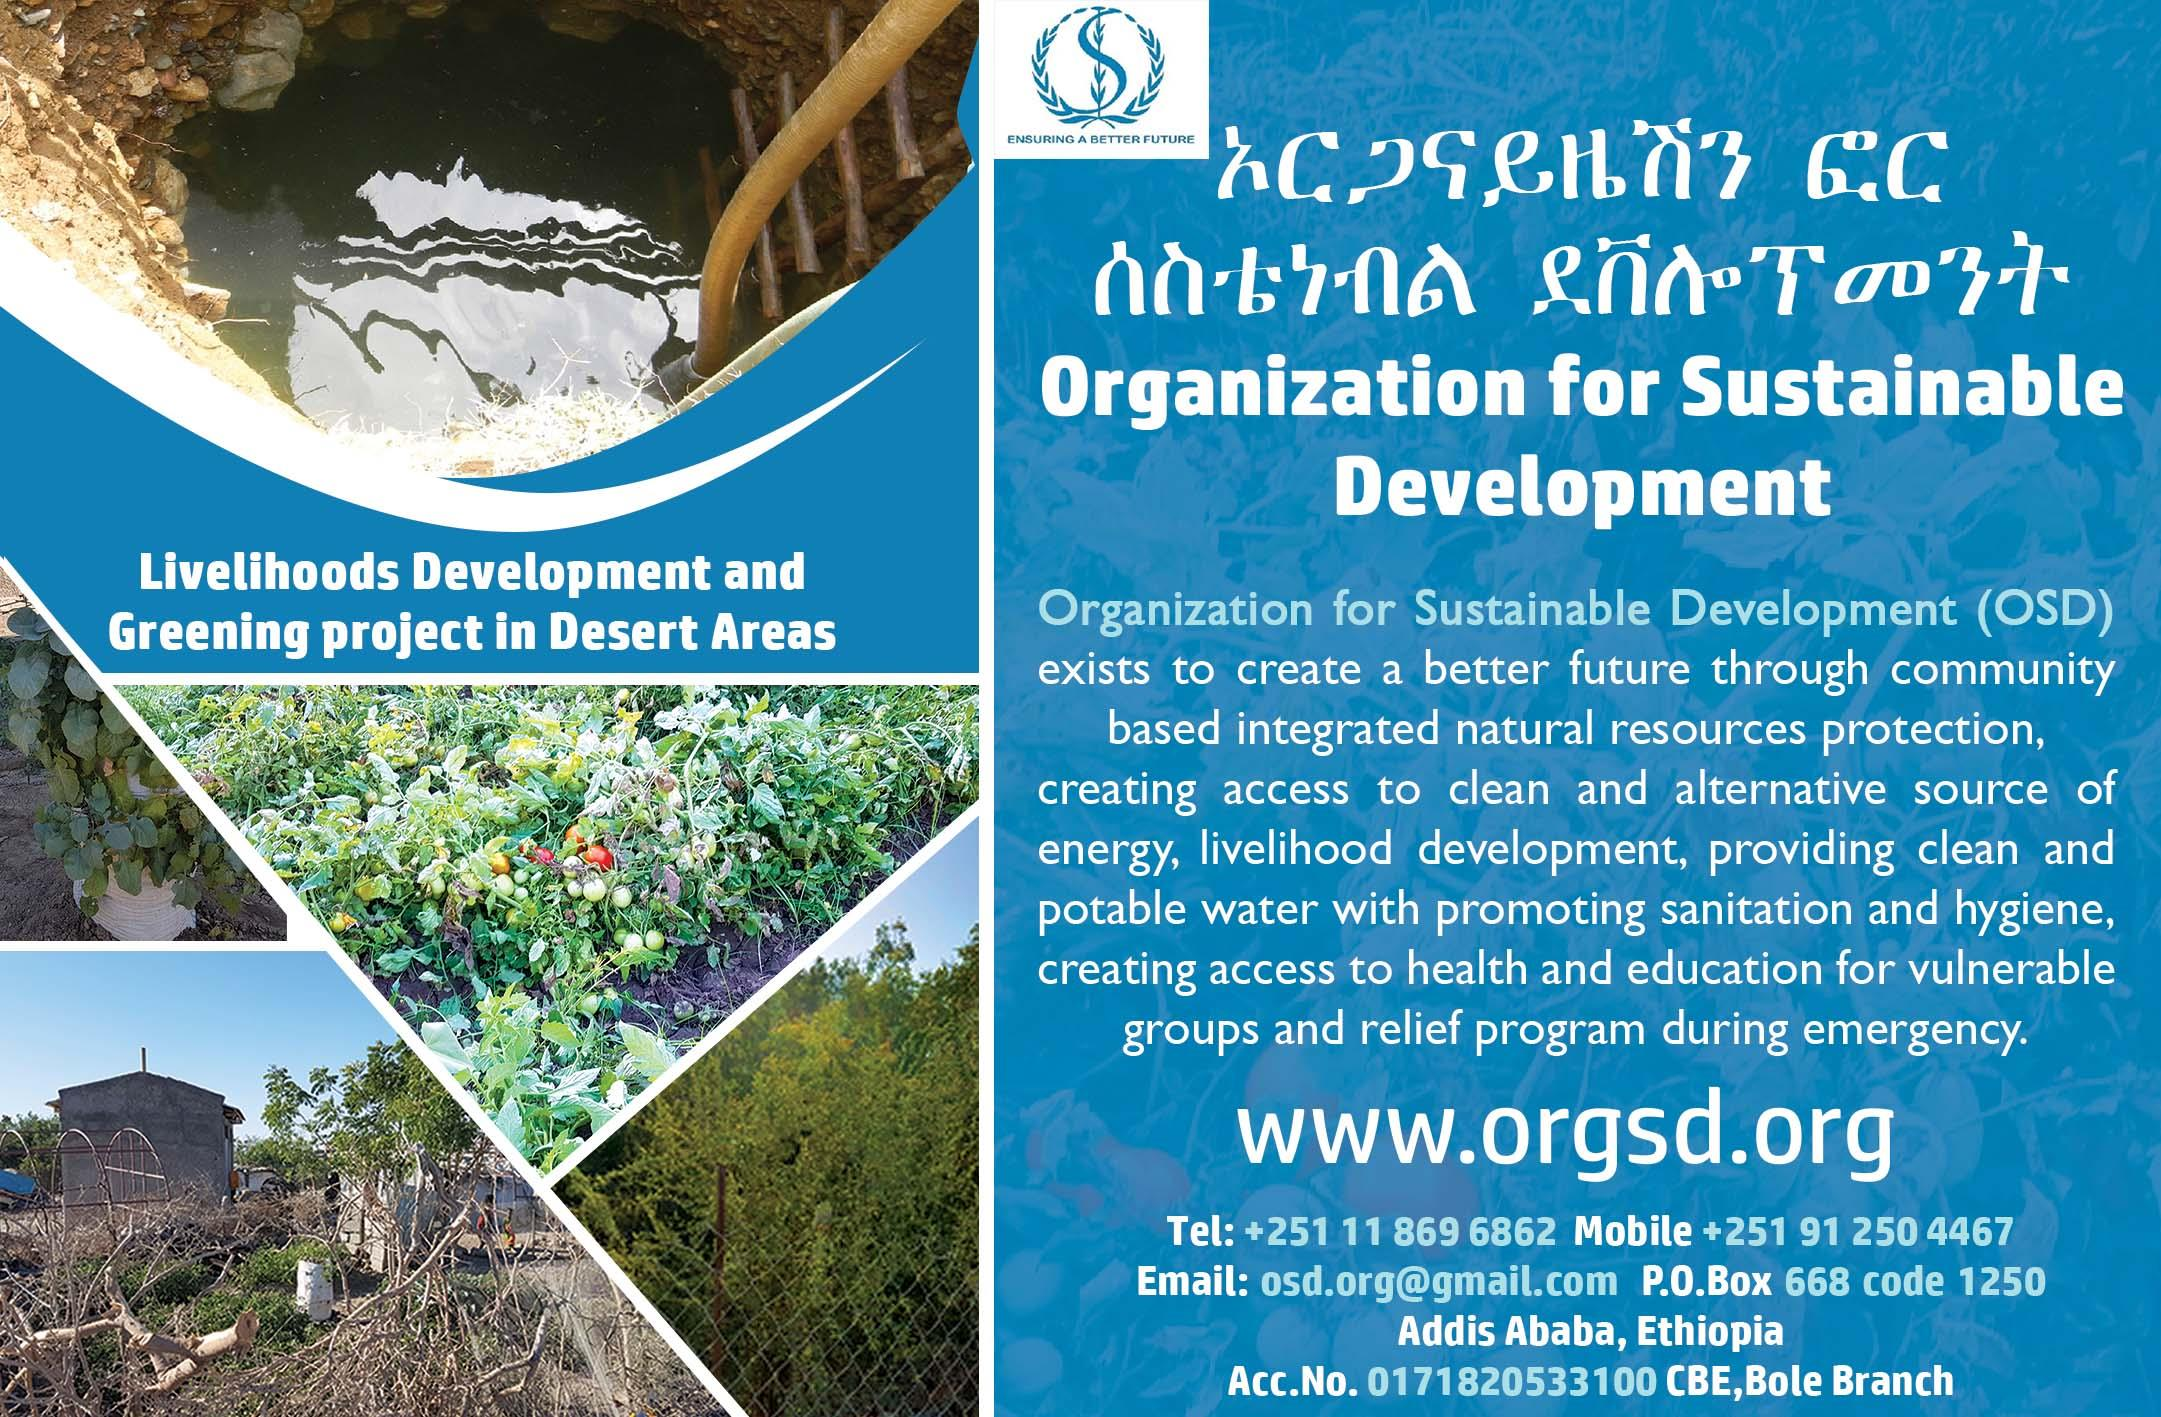 Organization for Sustainable Development (OSD)